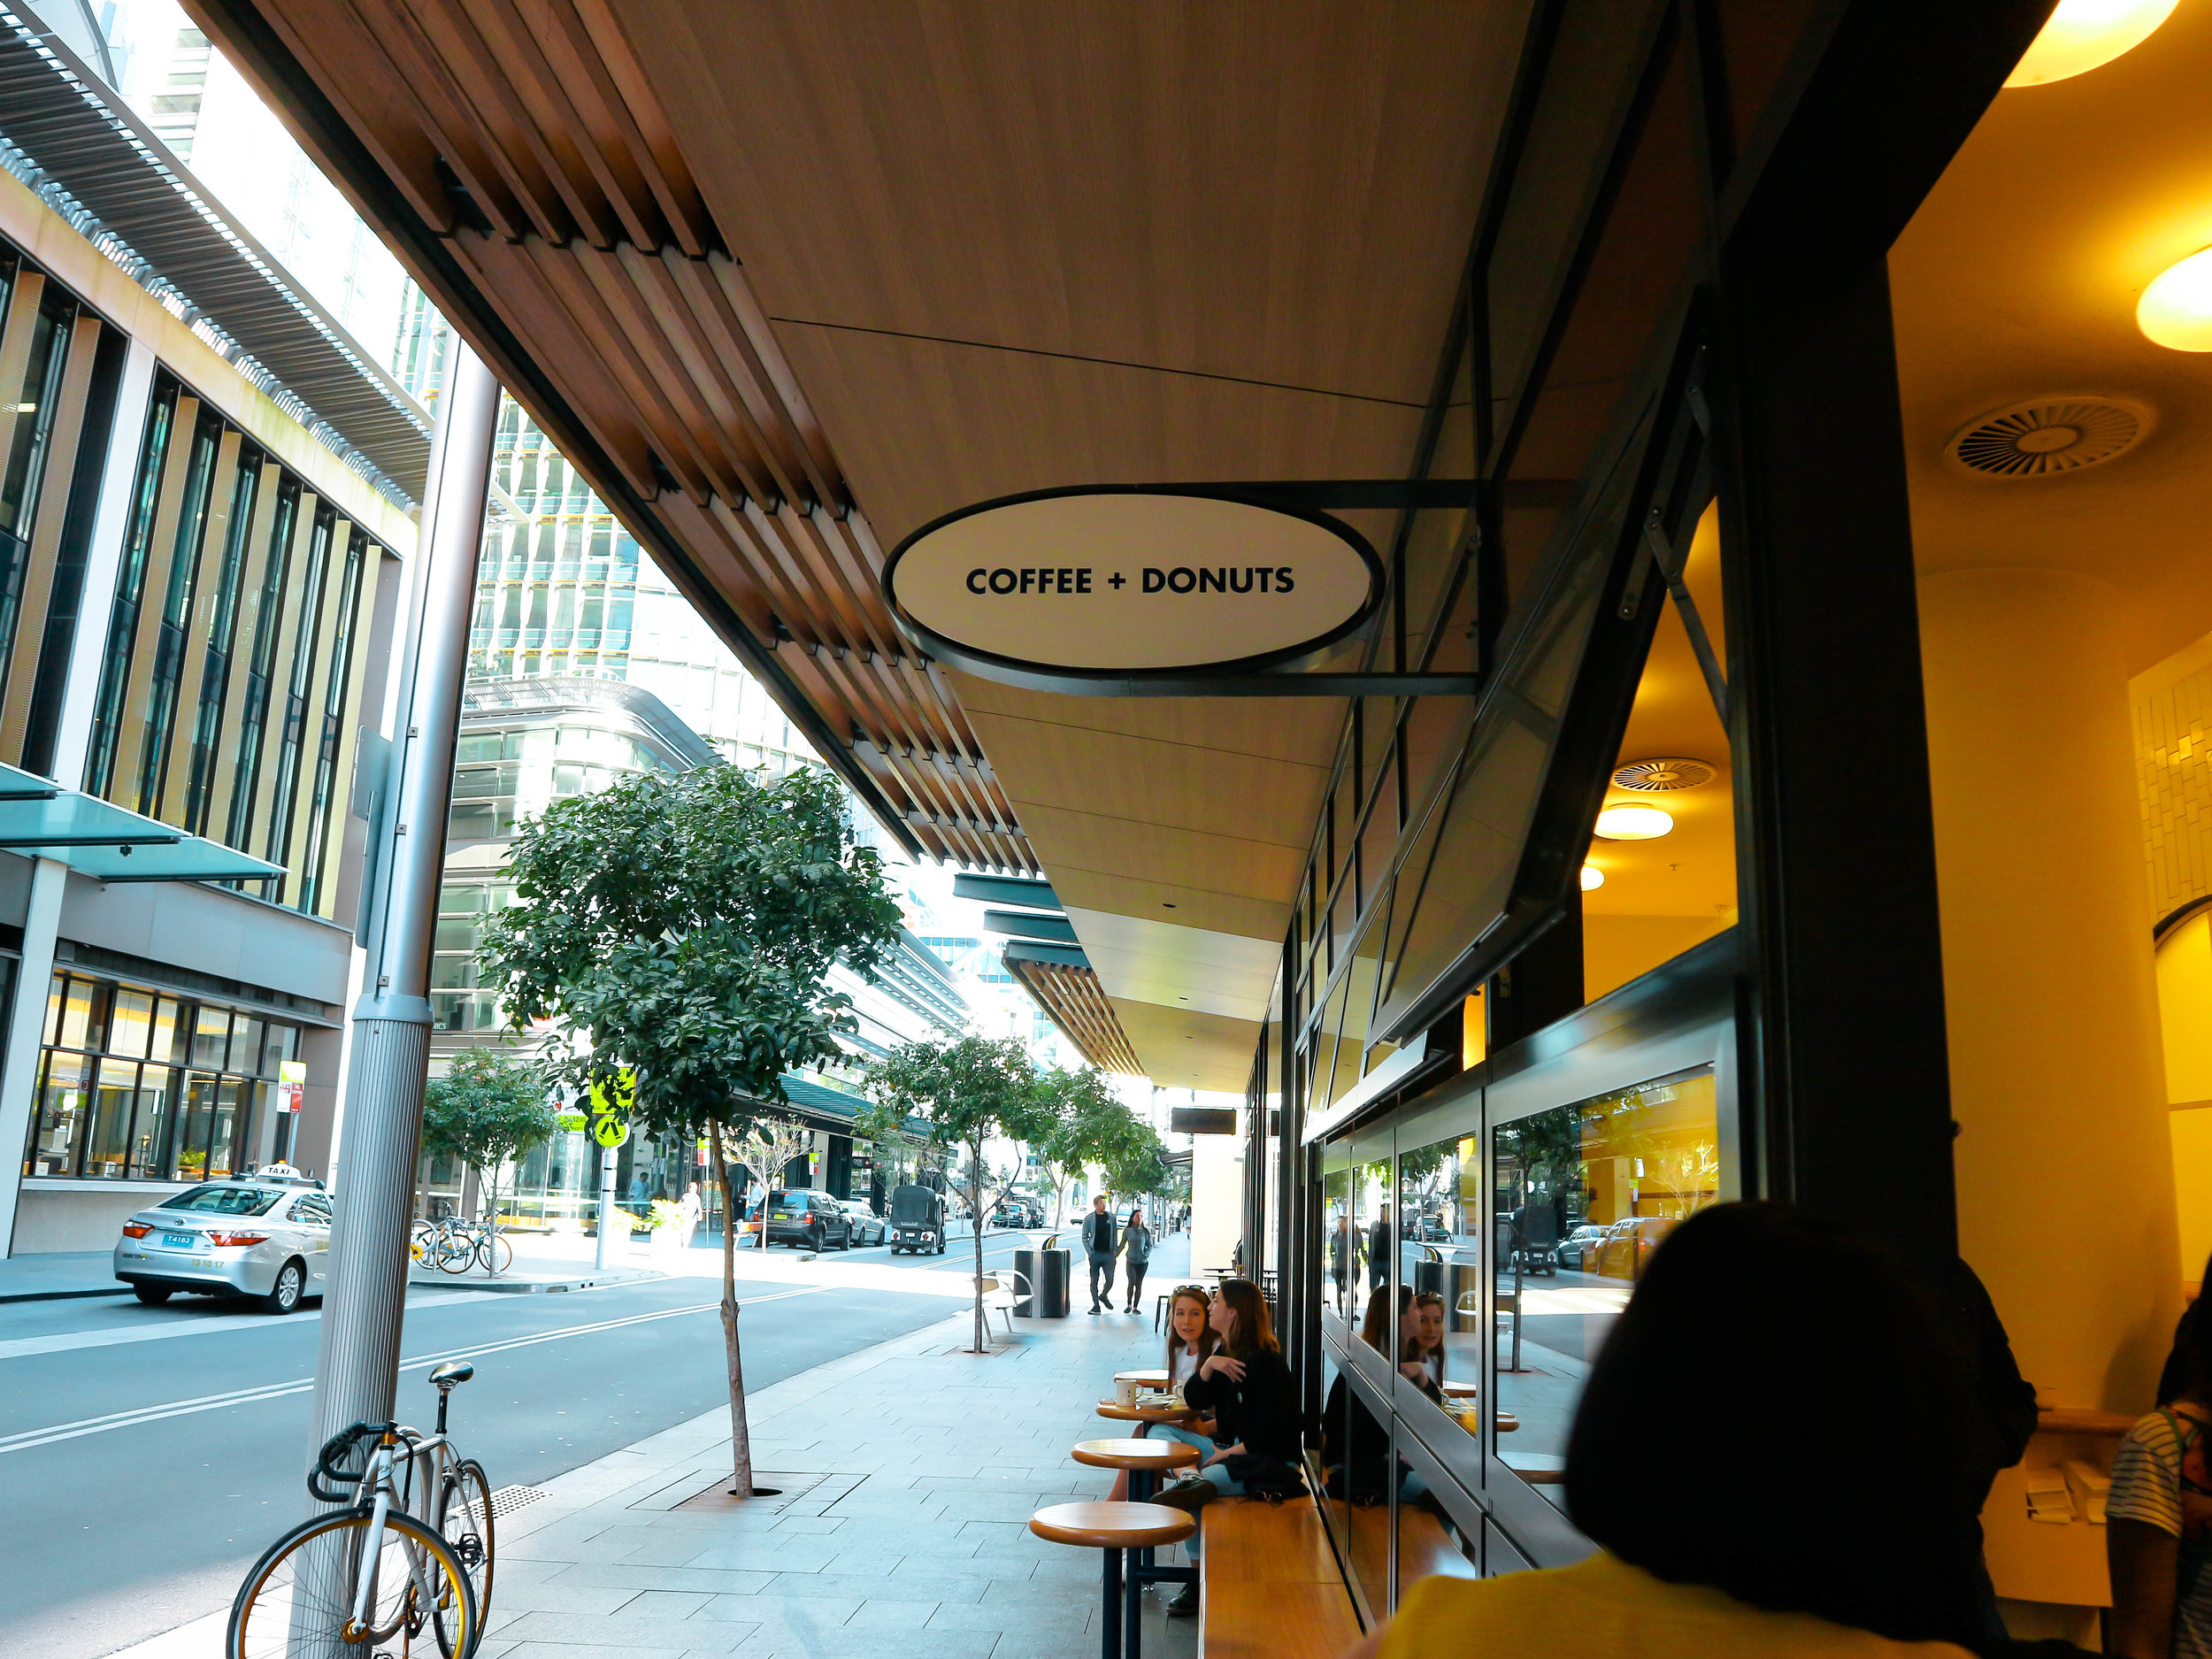 Short Stop -  This place is perfect to make a quick stop for - you guessed it - coffee and donuts! They have specialty coffee on offer on rotation, as well classic and limited edition donuts like Triple Matcha, Maple & Brown Butter, and flavours of the month that's whatever is in season, or whatever the masterminds in the kitchen feel like whipping up for you...